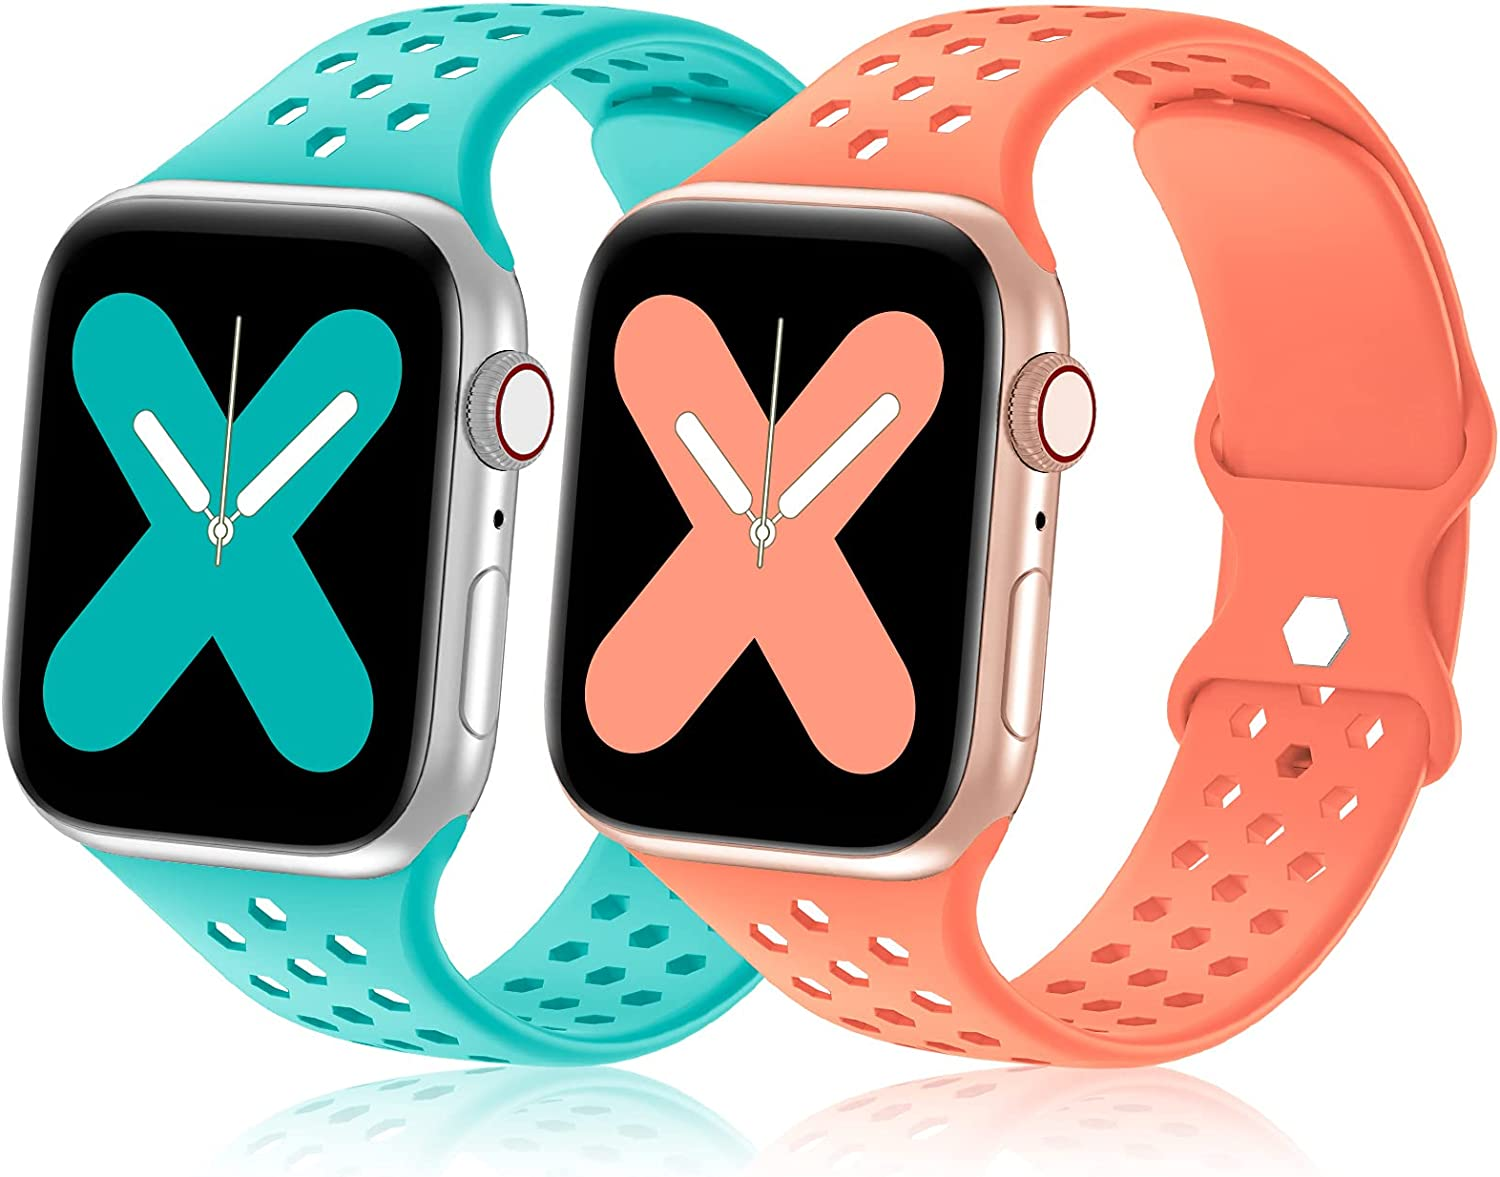 YAXIN Sport Bands 2 Pack Compatible with Apple Watch 38mm 40mm 42mm 44mm , Soft Silicone Sport Replacement Strap Compatible for iWatch Series SE 6 5 4 3 2 1, Breathable Watch bands for Women Men